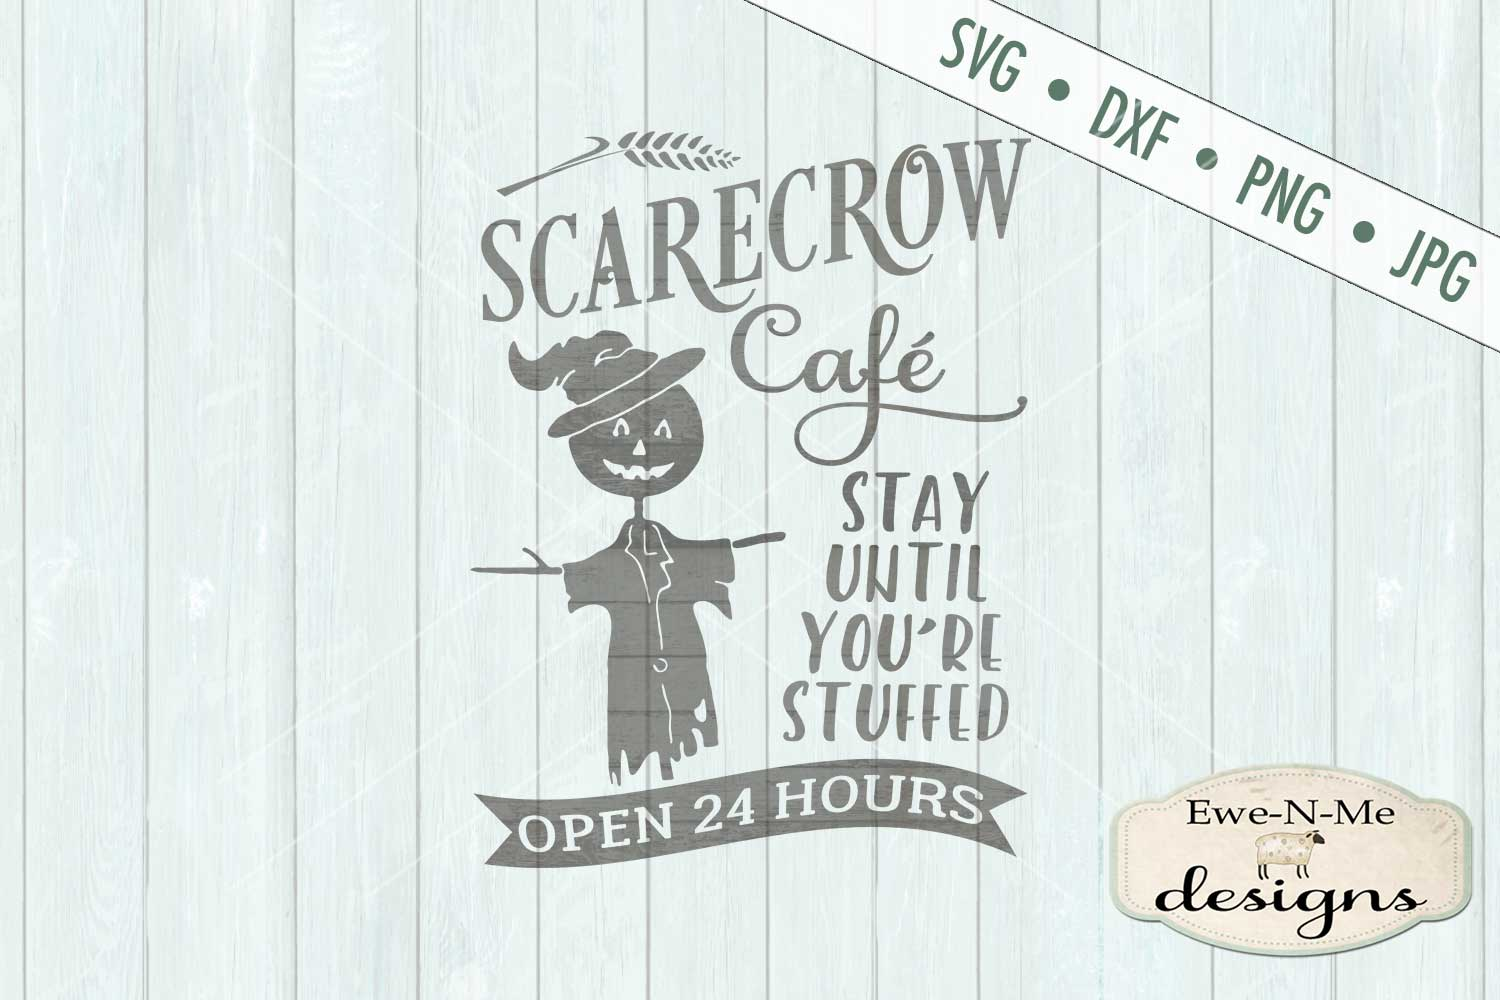 Scarecrow Cafe SVG DXF Files example image 2